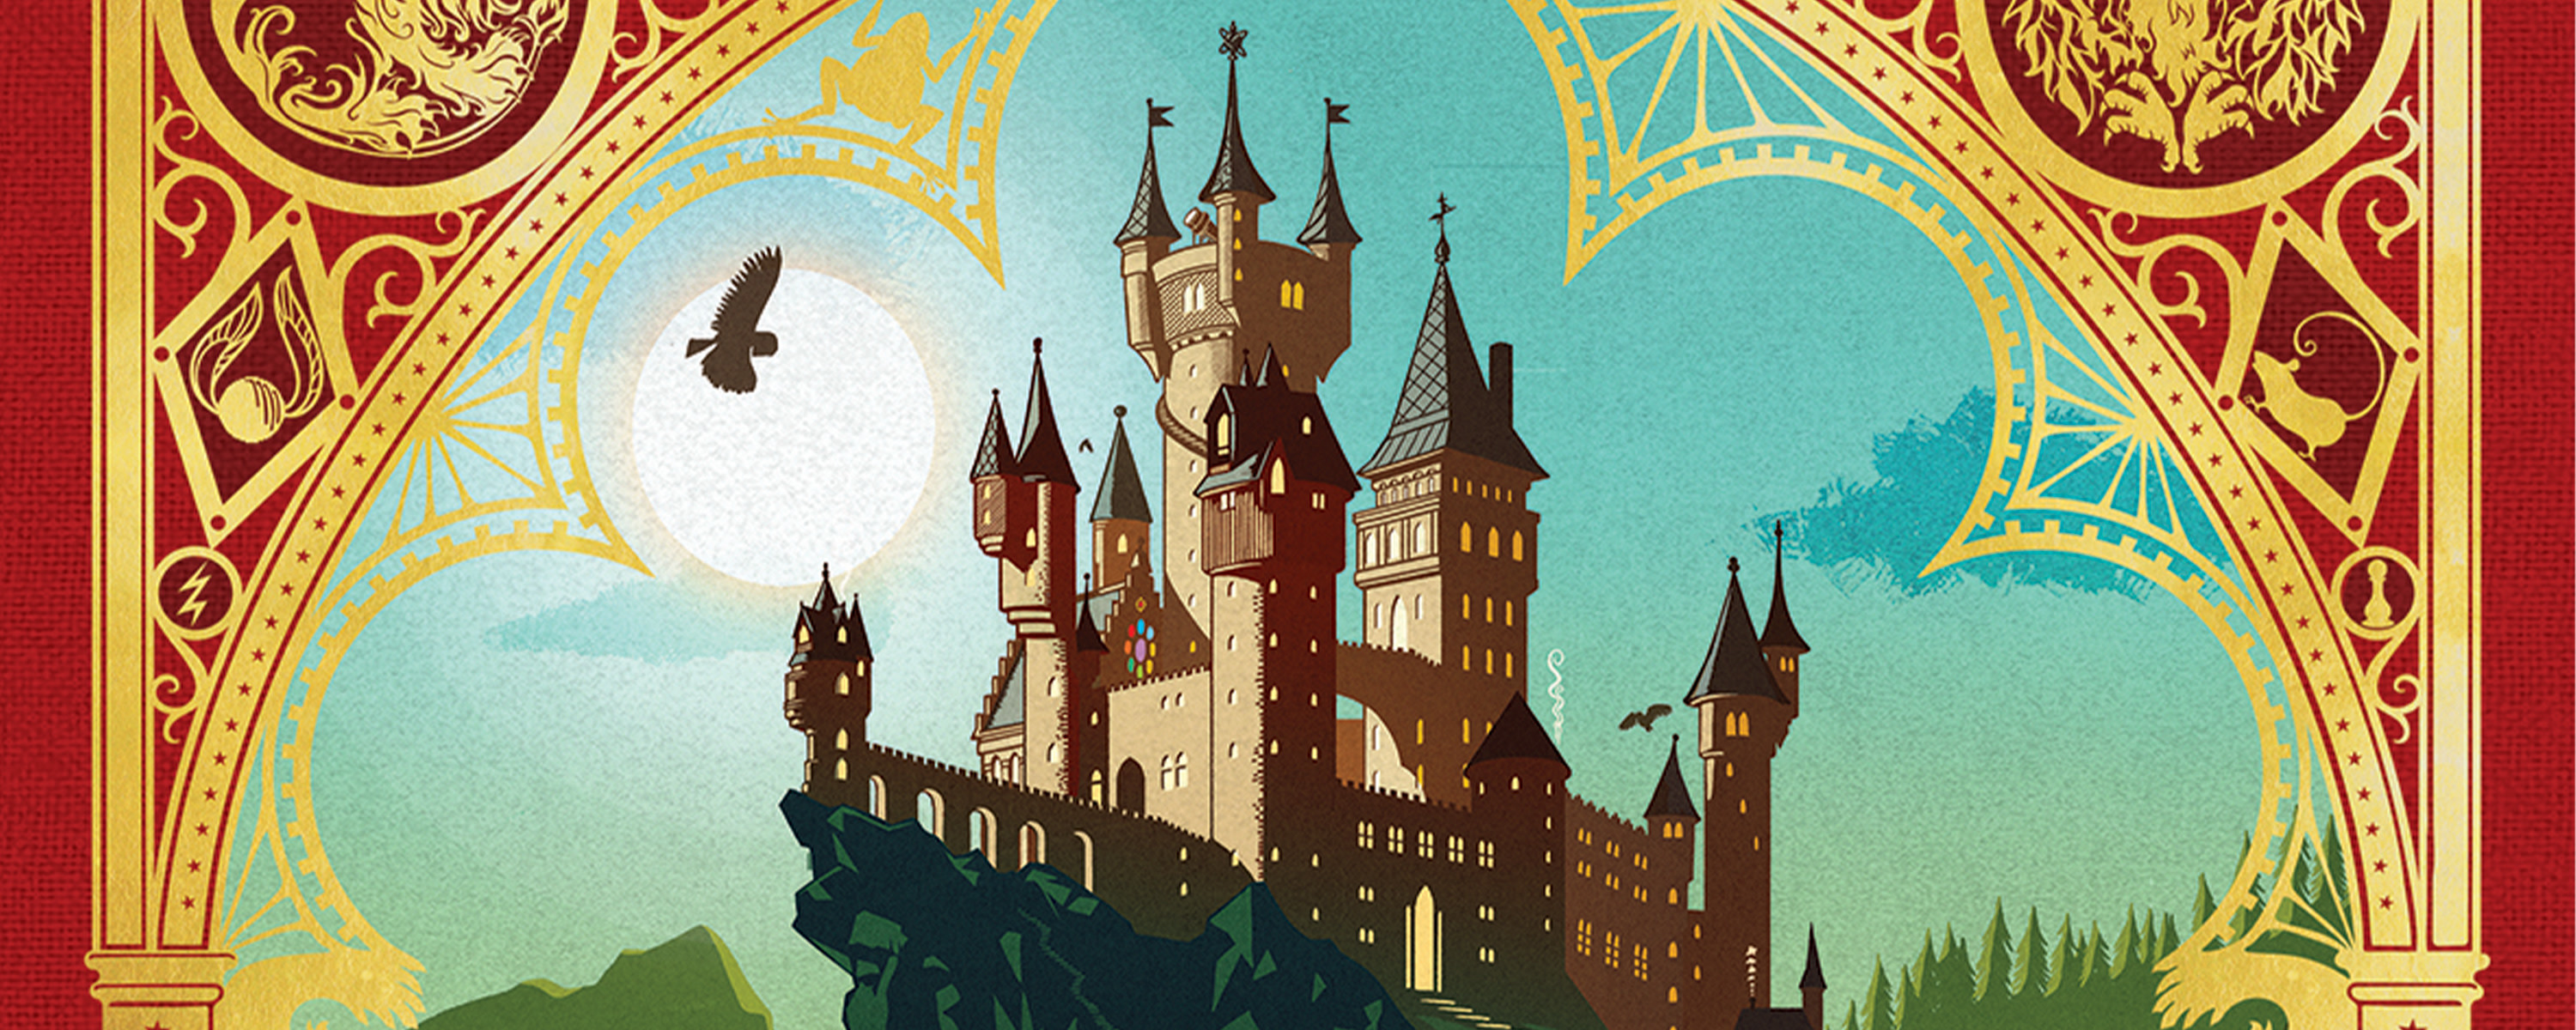 illustrated-edition-sorcerer-stone-minalima-WEB-HEADER-IMAGE